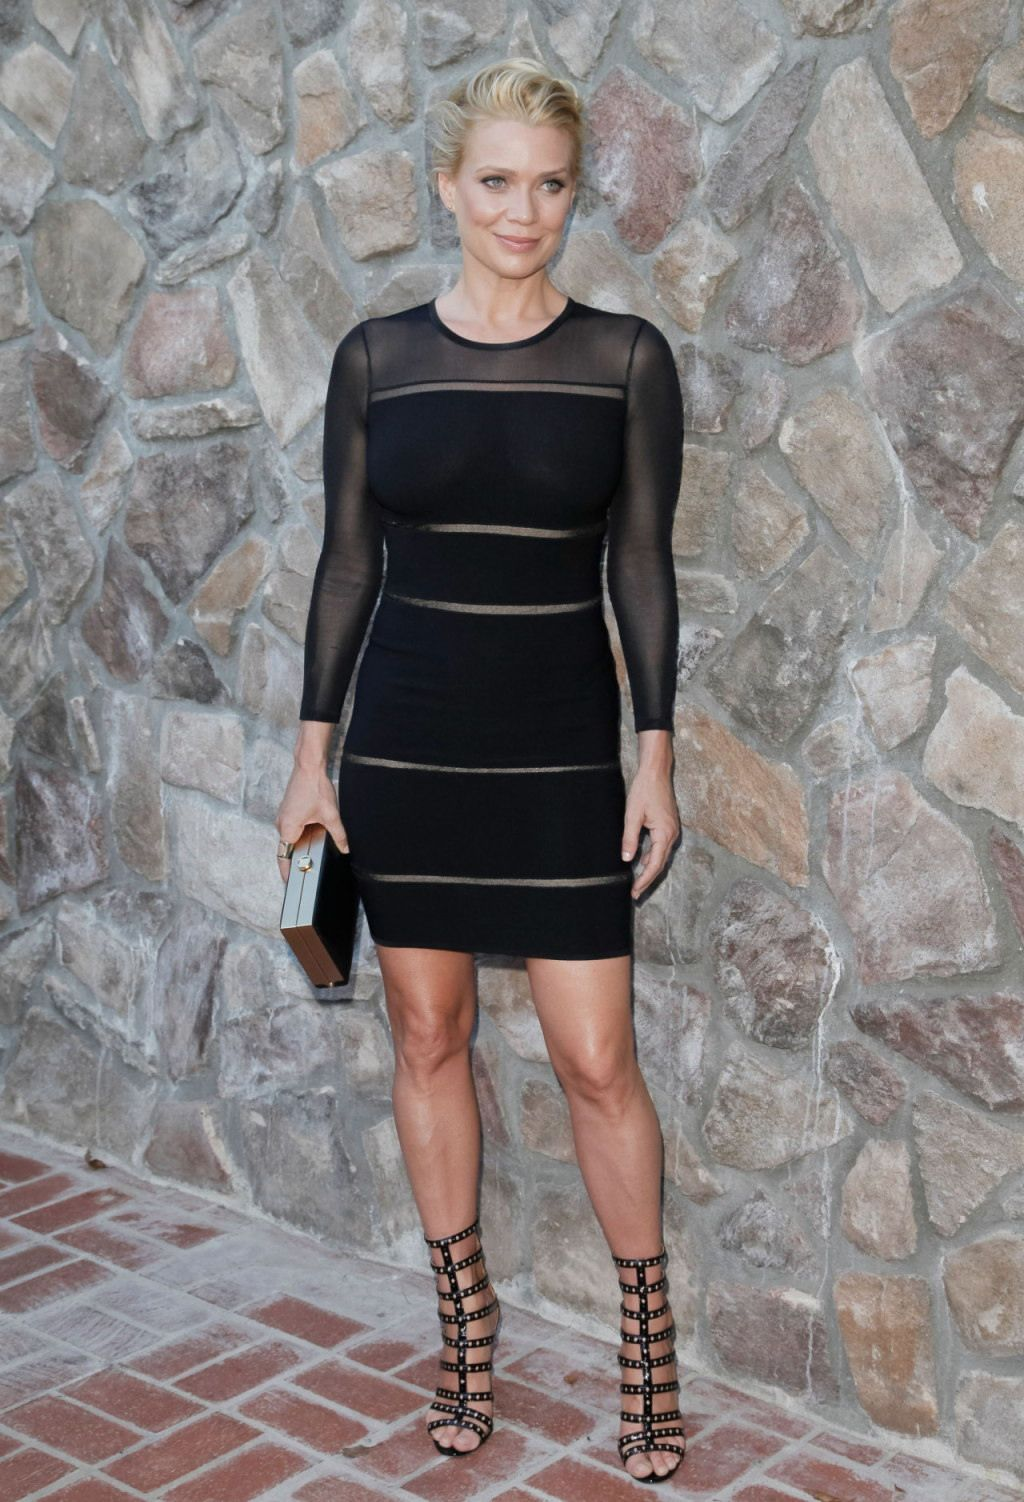 Laurie Holden, Fashion Figures, The